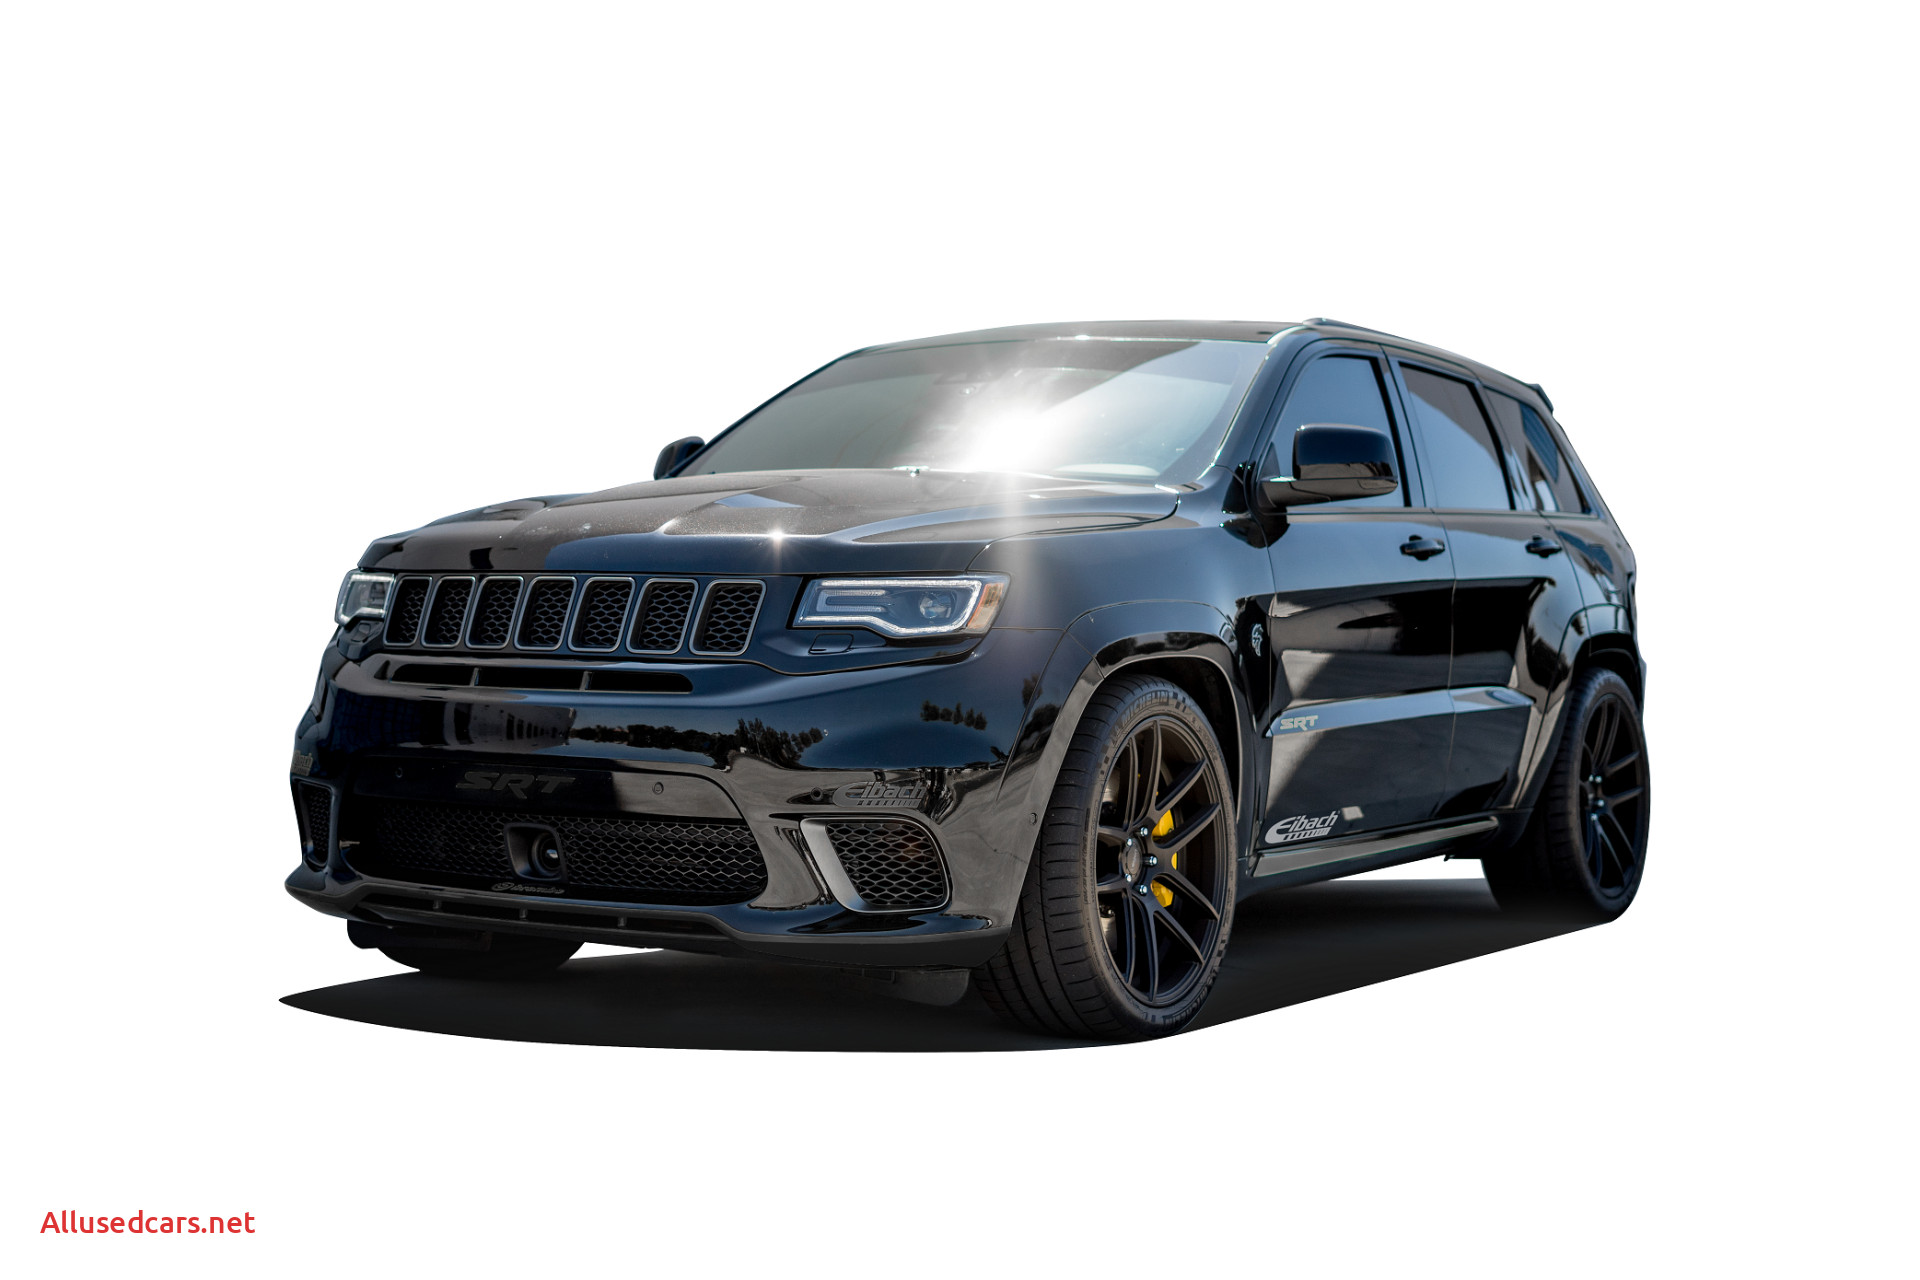 Jeep Grand Cherokee Srt8 Fresh Product Releases 2018 Jeep Grand Cherokee Trackhawk